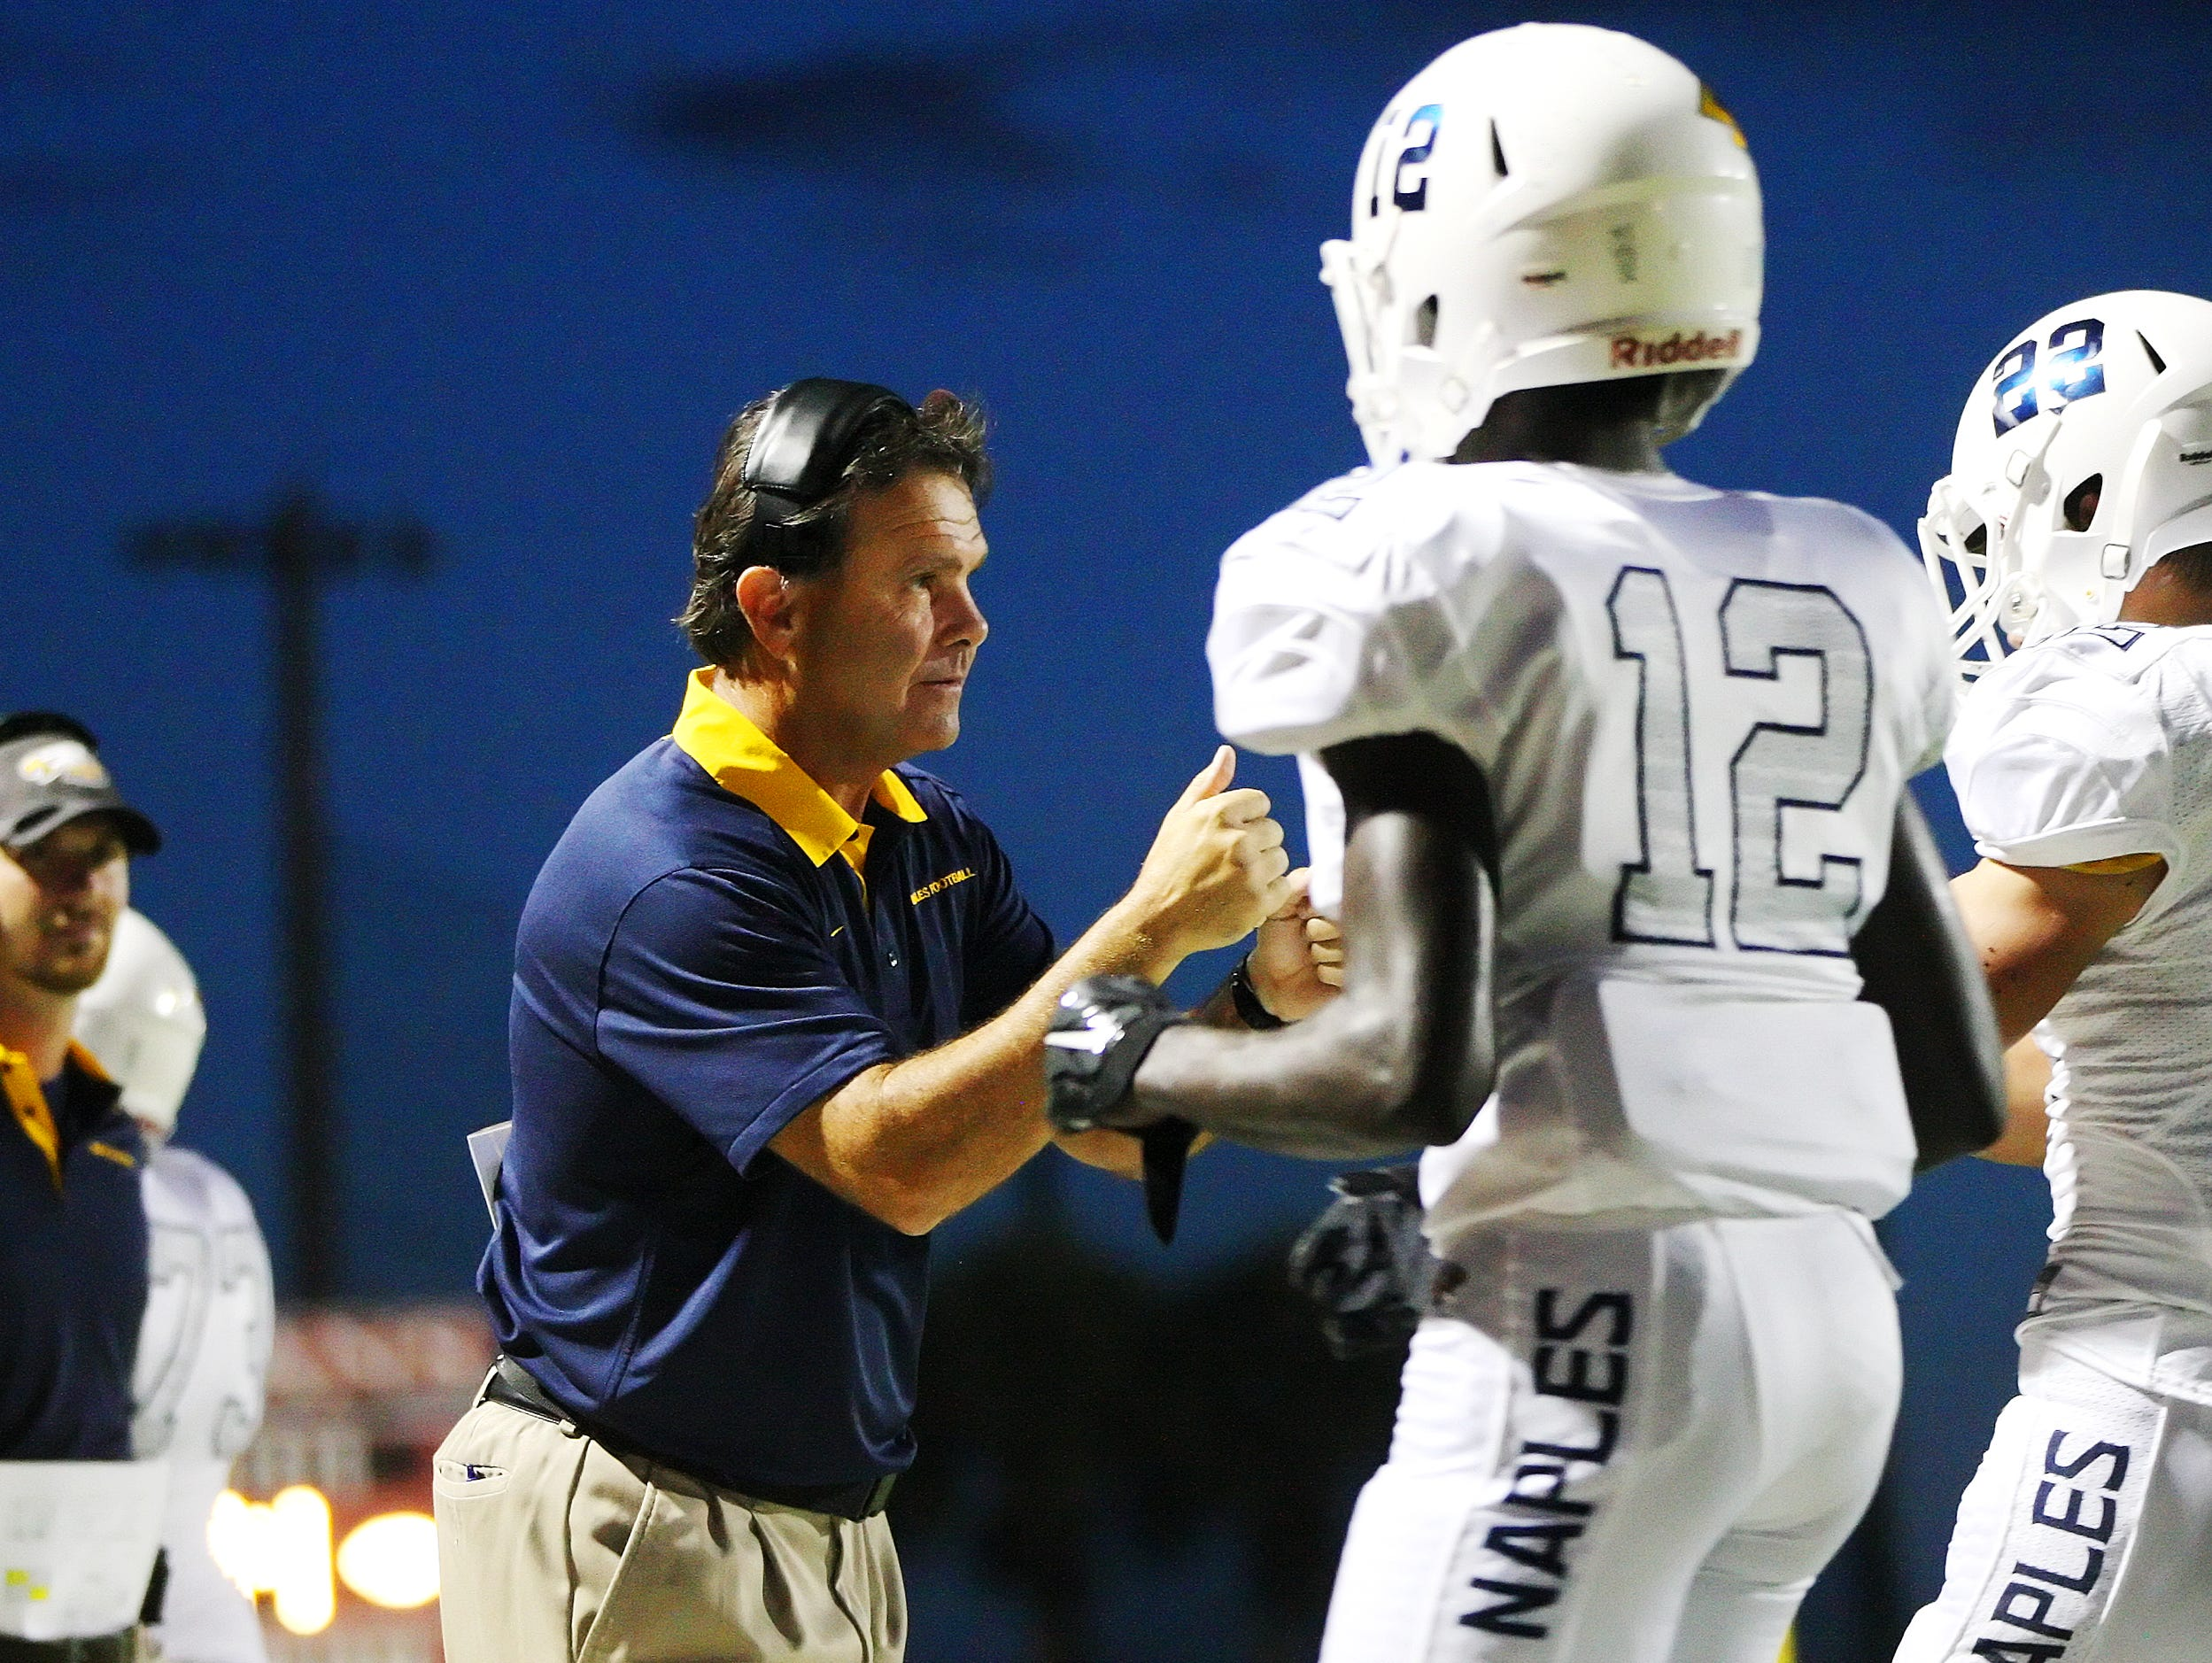 Naples High School head coach Bill Kramer has guided his team to the FHSAA Class 6A semifinals. Naples will play Miami Central on Friday at Traz Powell Stadium in Hialeah.